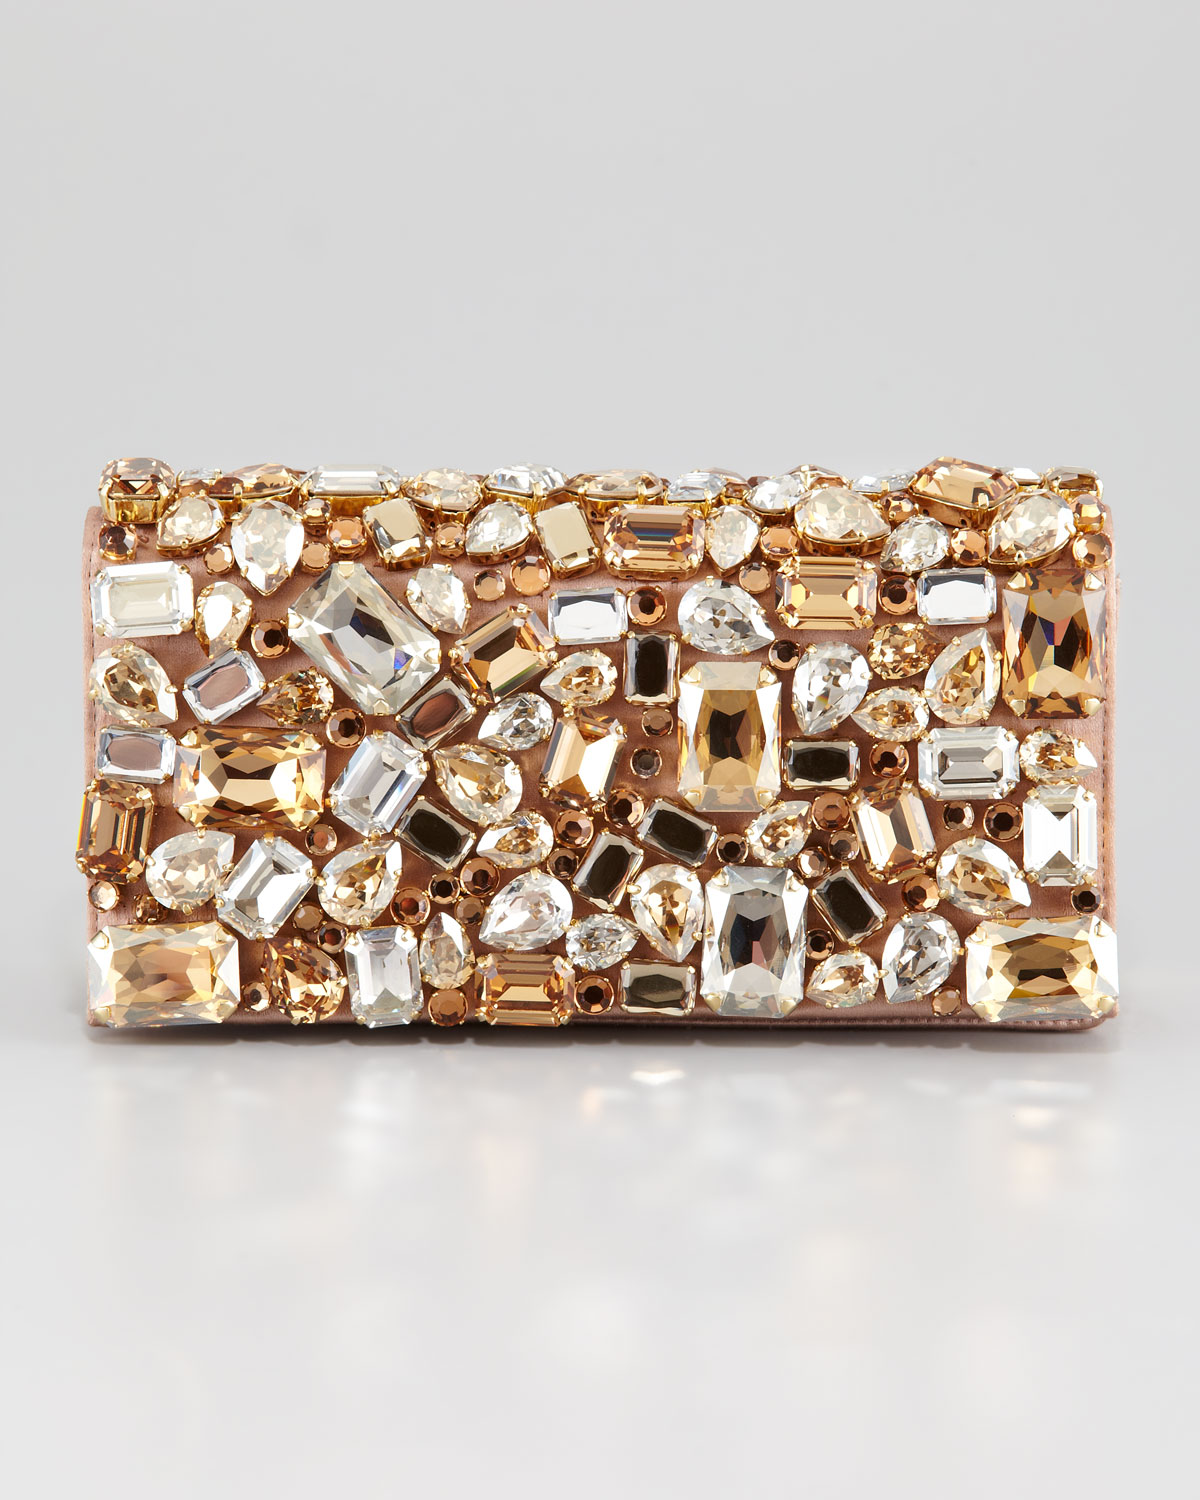 Prada Jeweled Clutch Bag in Multicolor | Lyst